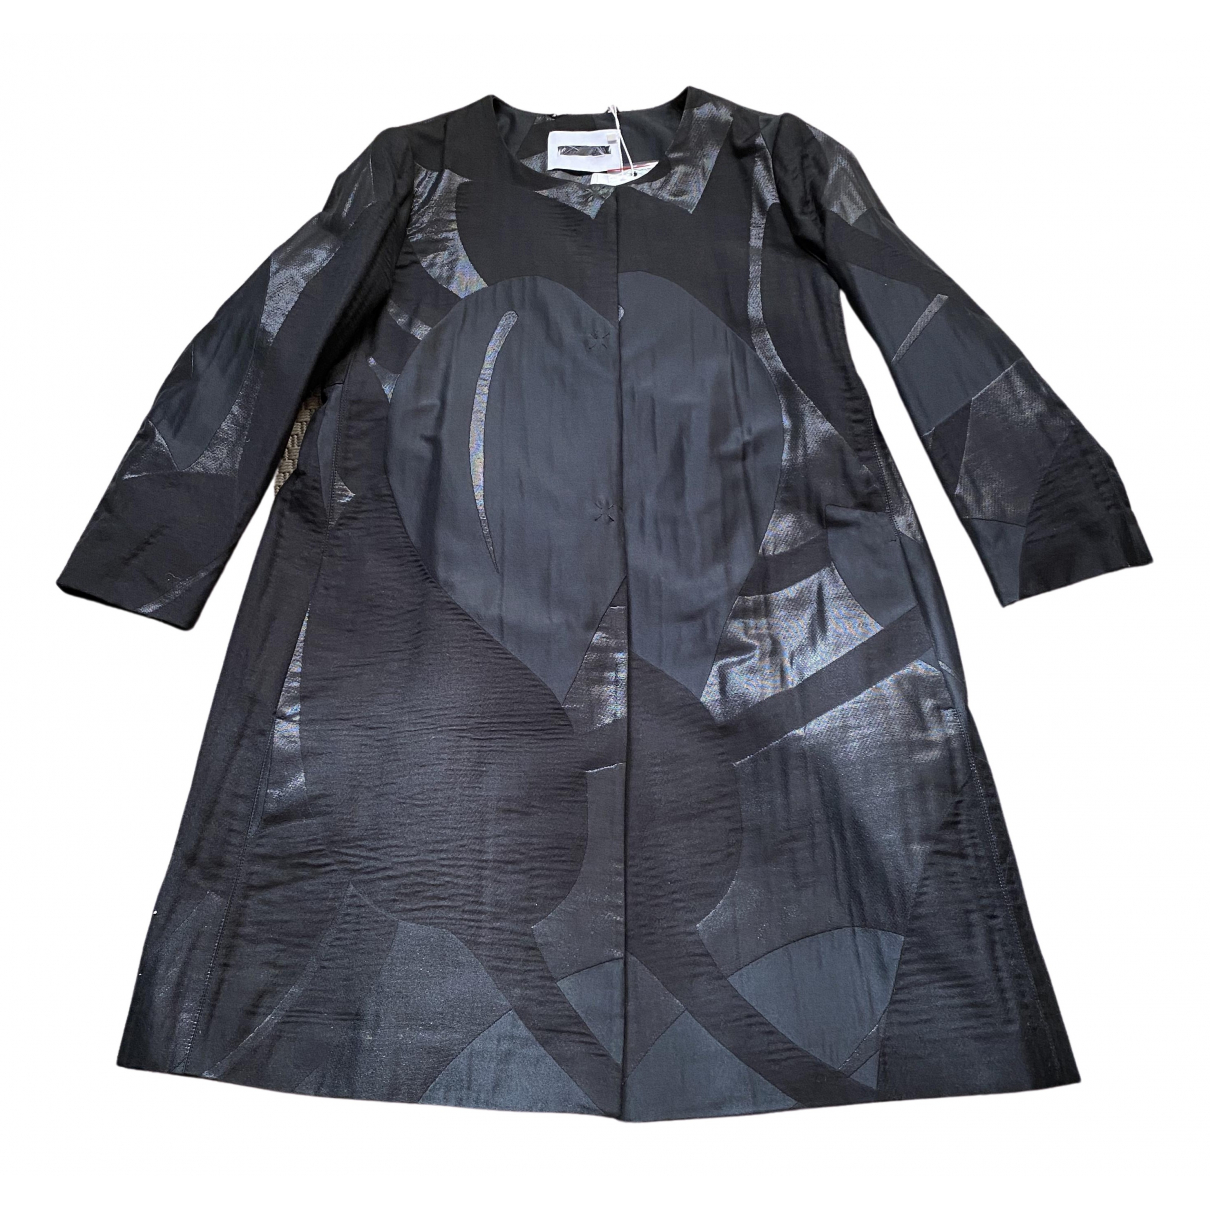 Max & Co \N Black coat for Women 44 IT